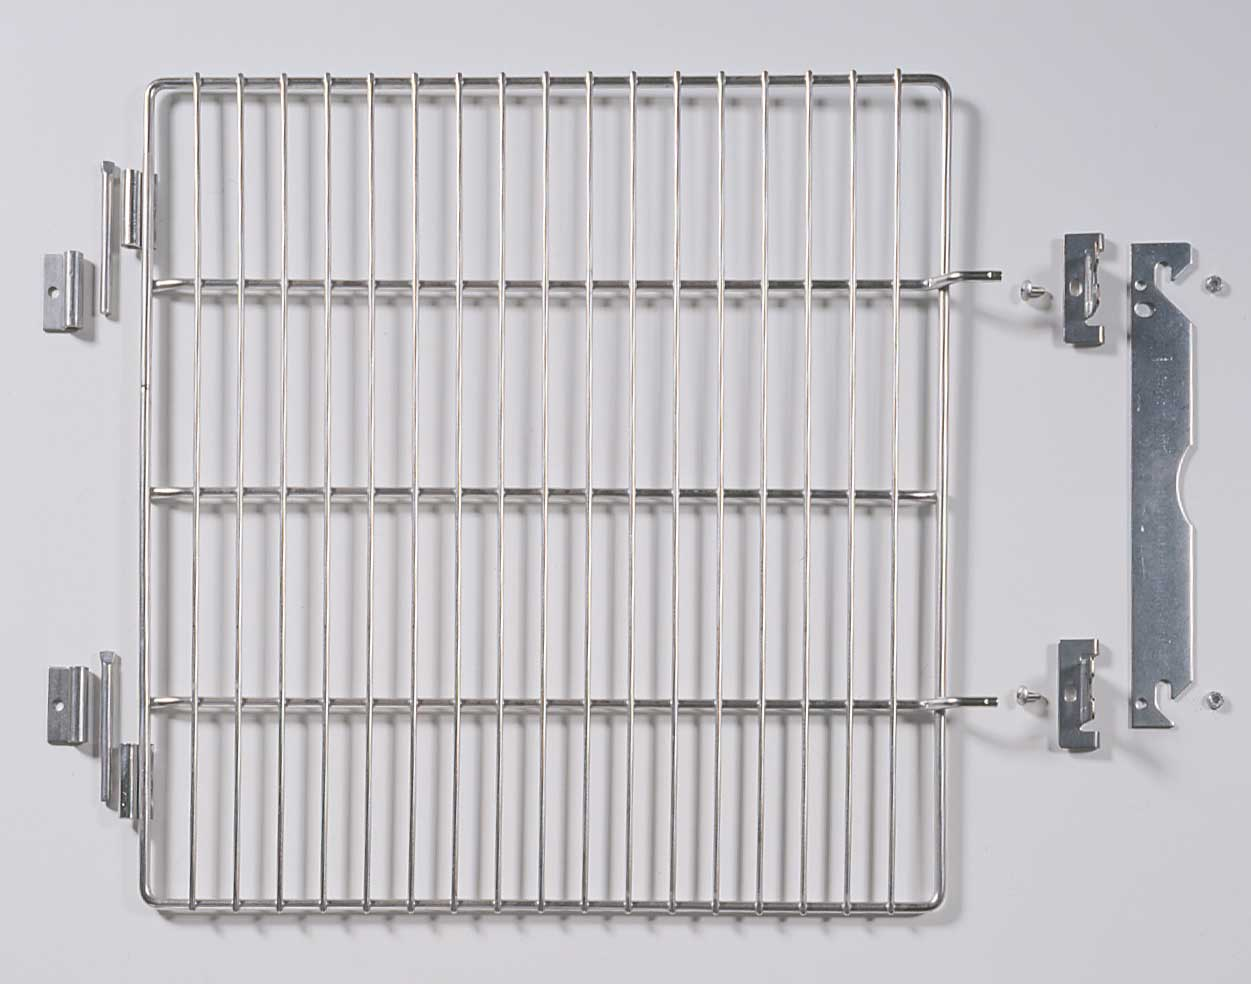 Regal Cage Doors Kits for Customer Built Double Door Cages  sc 1 st  Suburban Surgical & Cage Accessories